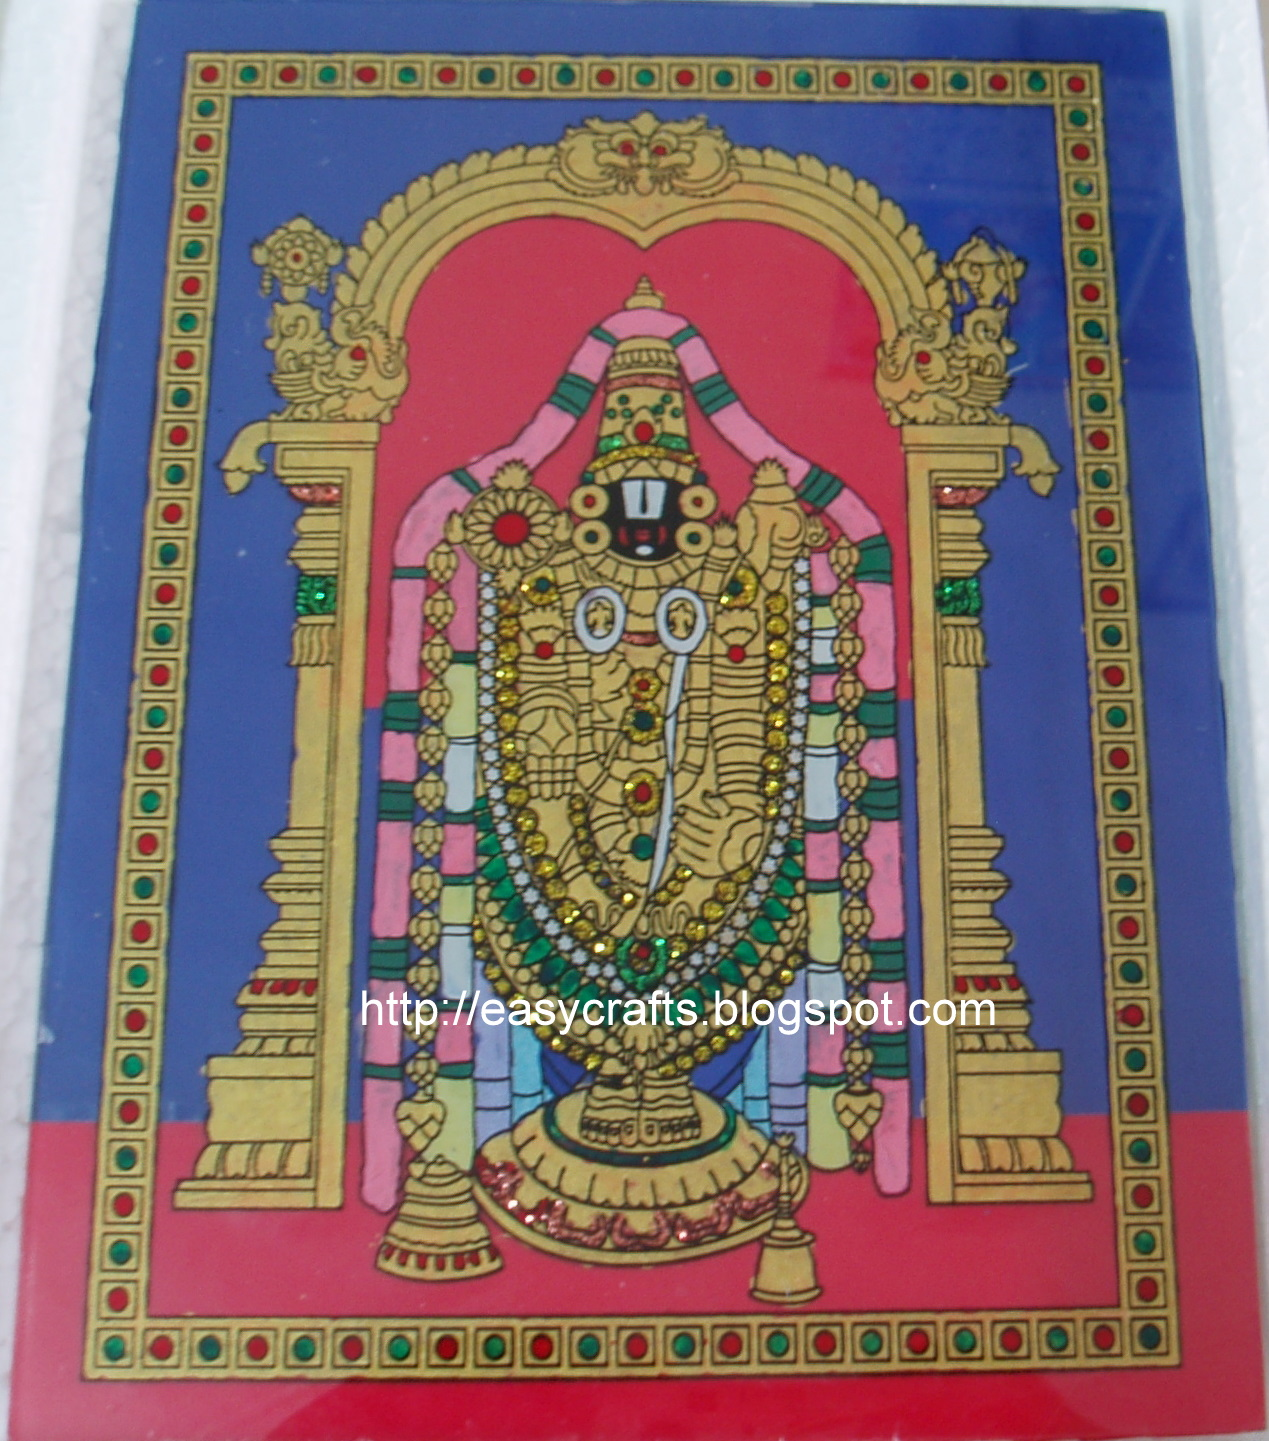 """thanjavur hindu personals According to hindu scriptures, he is the guru of the devas and the arch-nemesis of shukracharya, the guru of the danavas he is also known guru, the god of wisdom and eloquence, to whom various works are ascribed, such as the """"atheistic"""" barhaspatya sutras."""